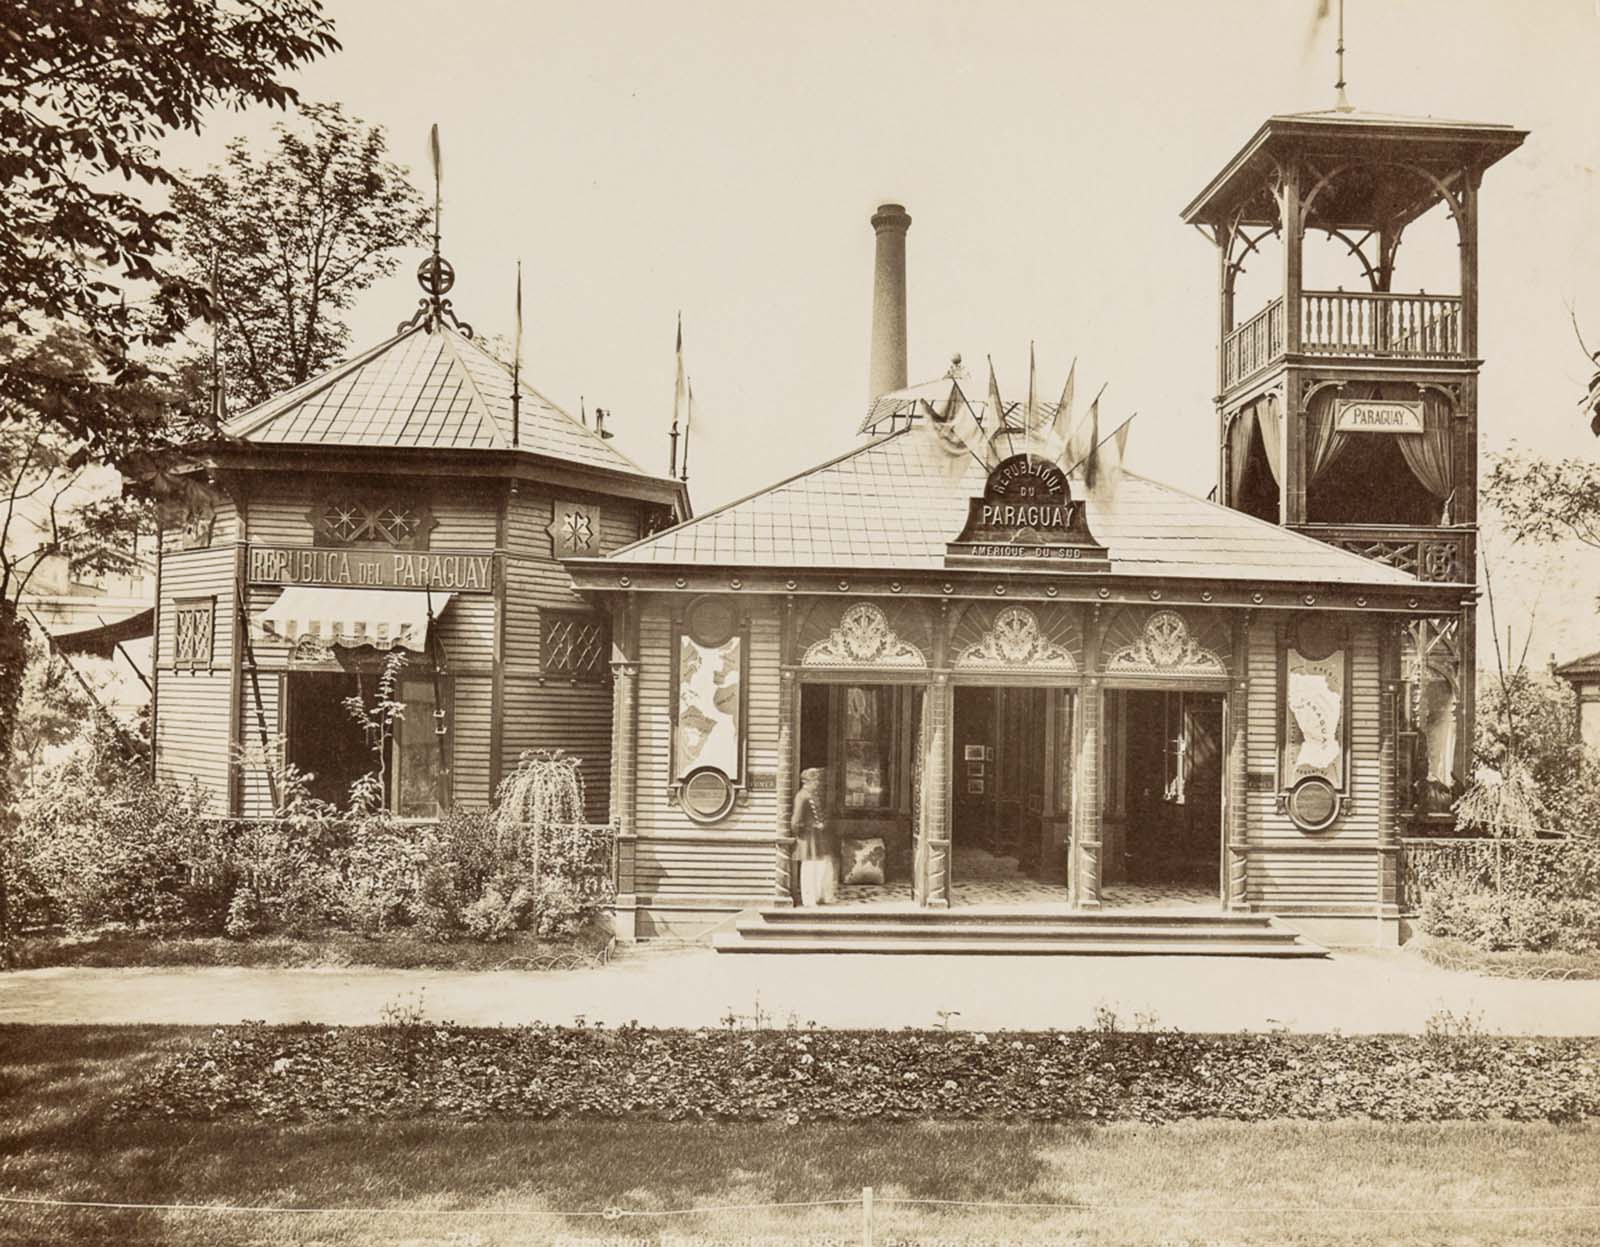 The pavilion of Paraguay.